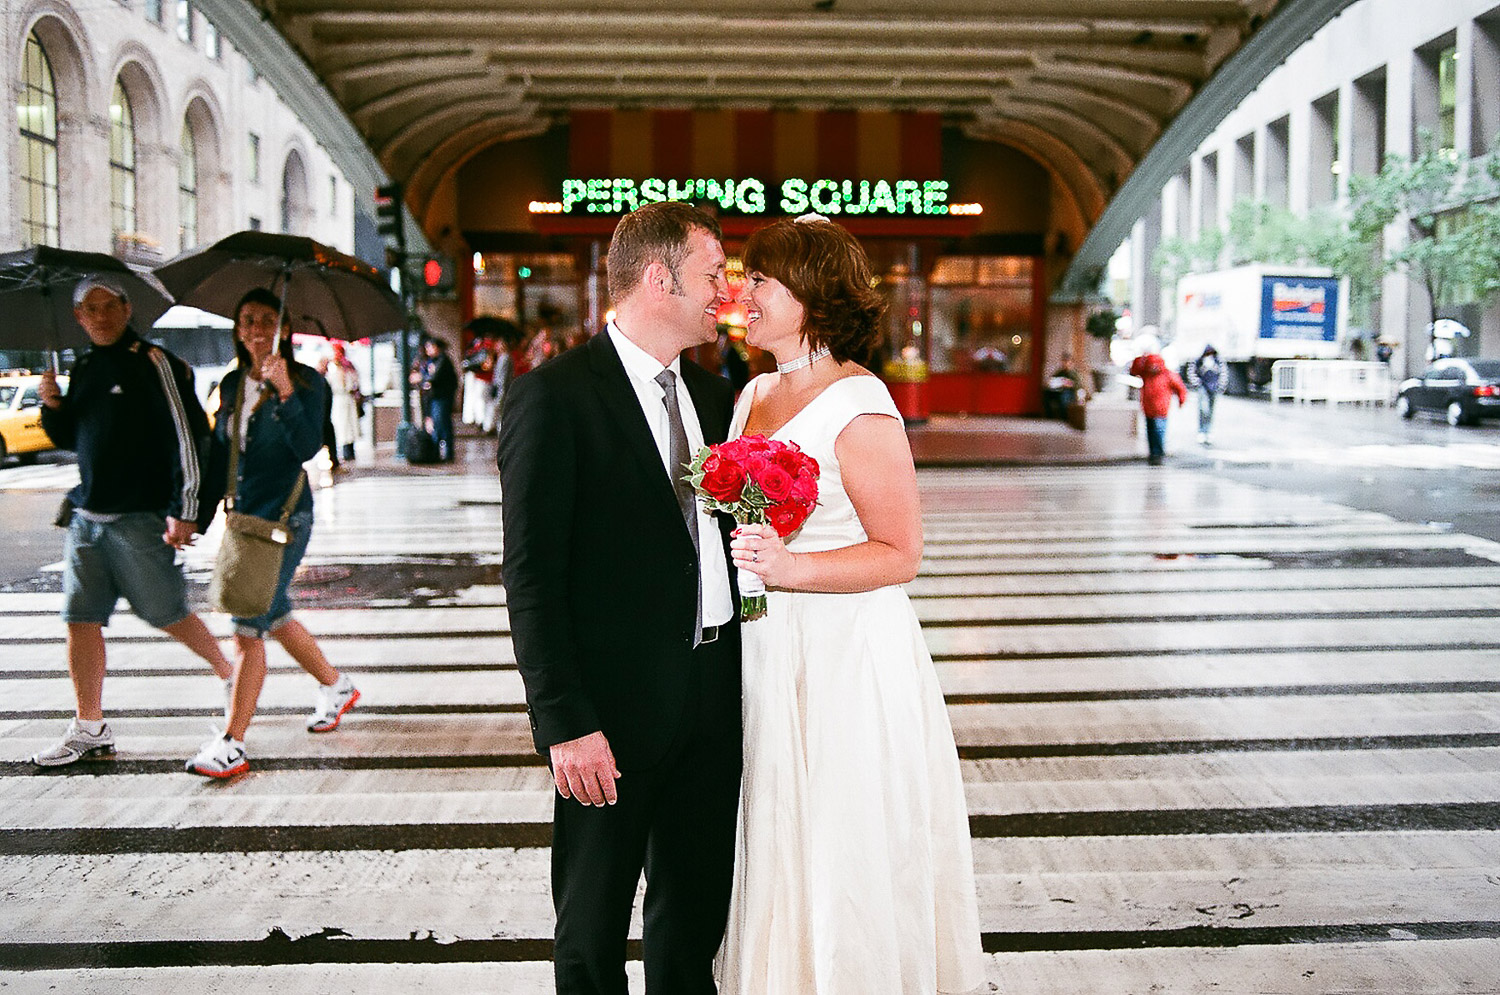 elopement wedding day photo by wendy g photography